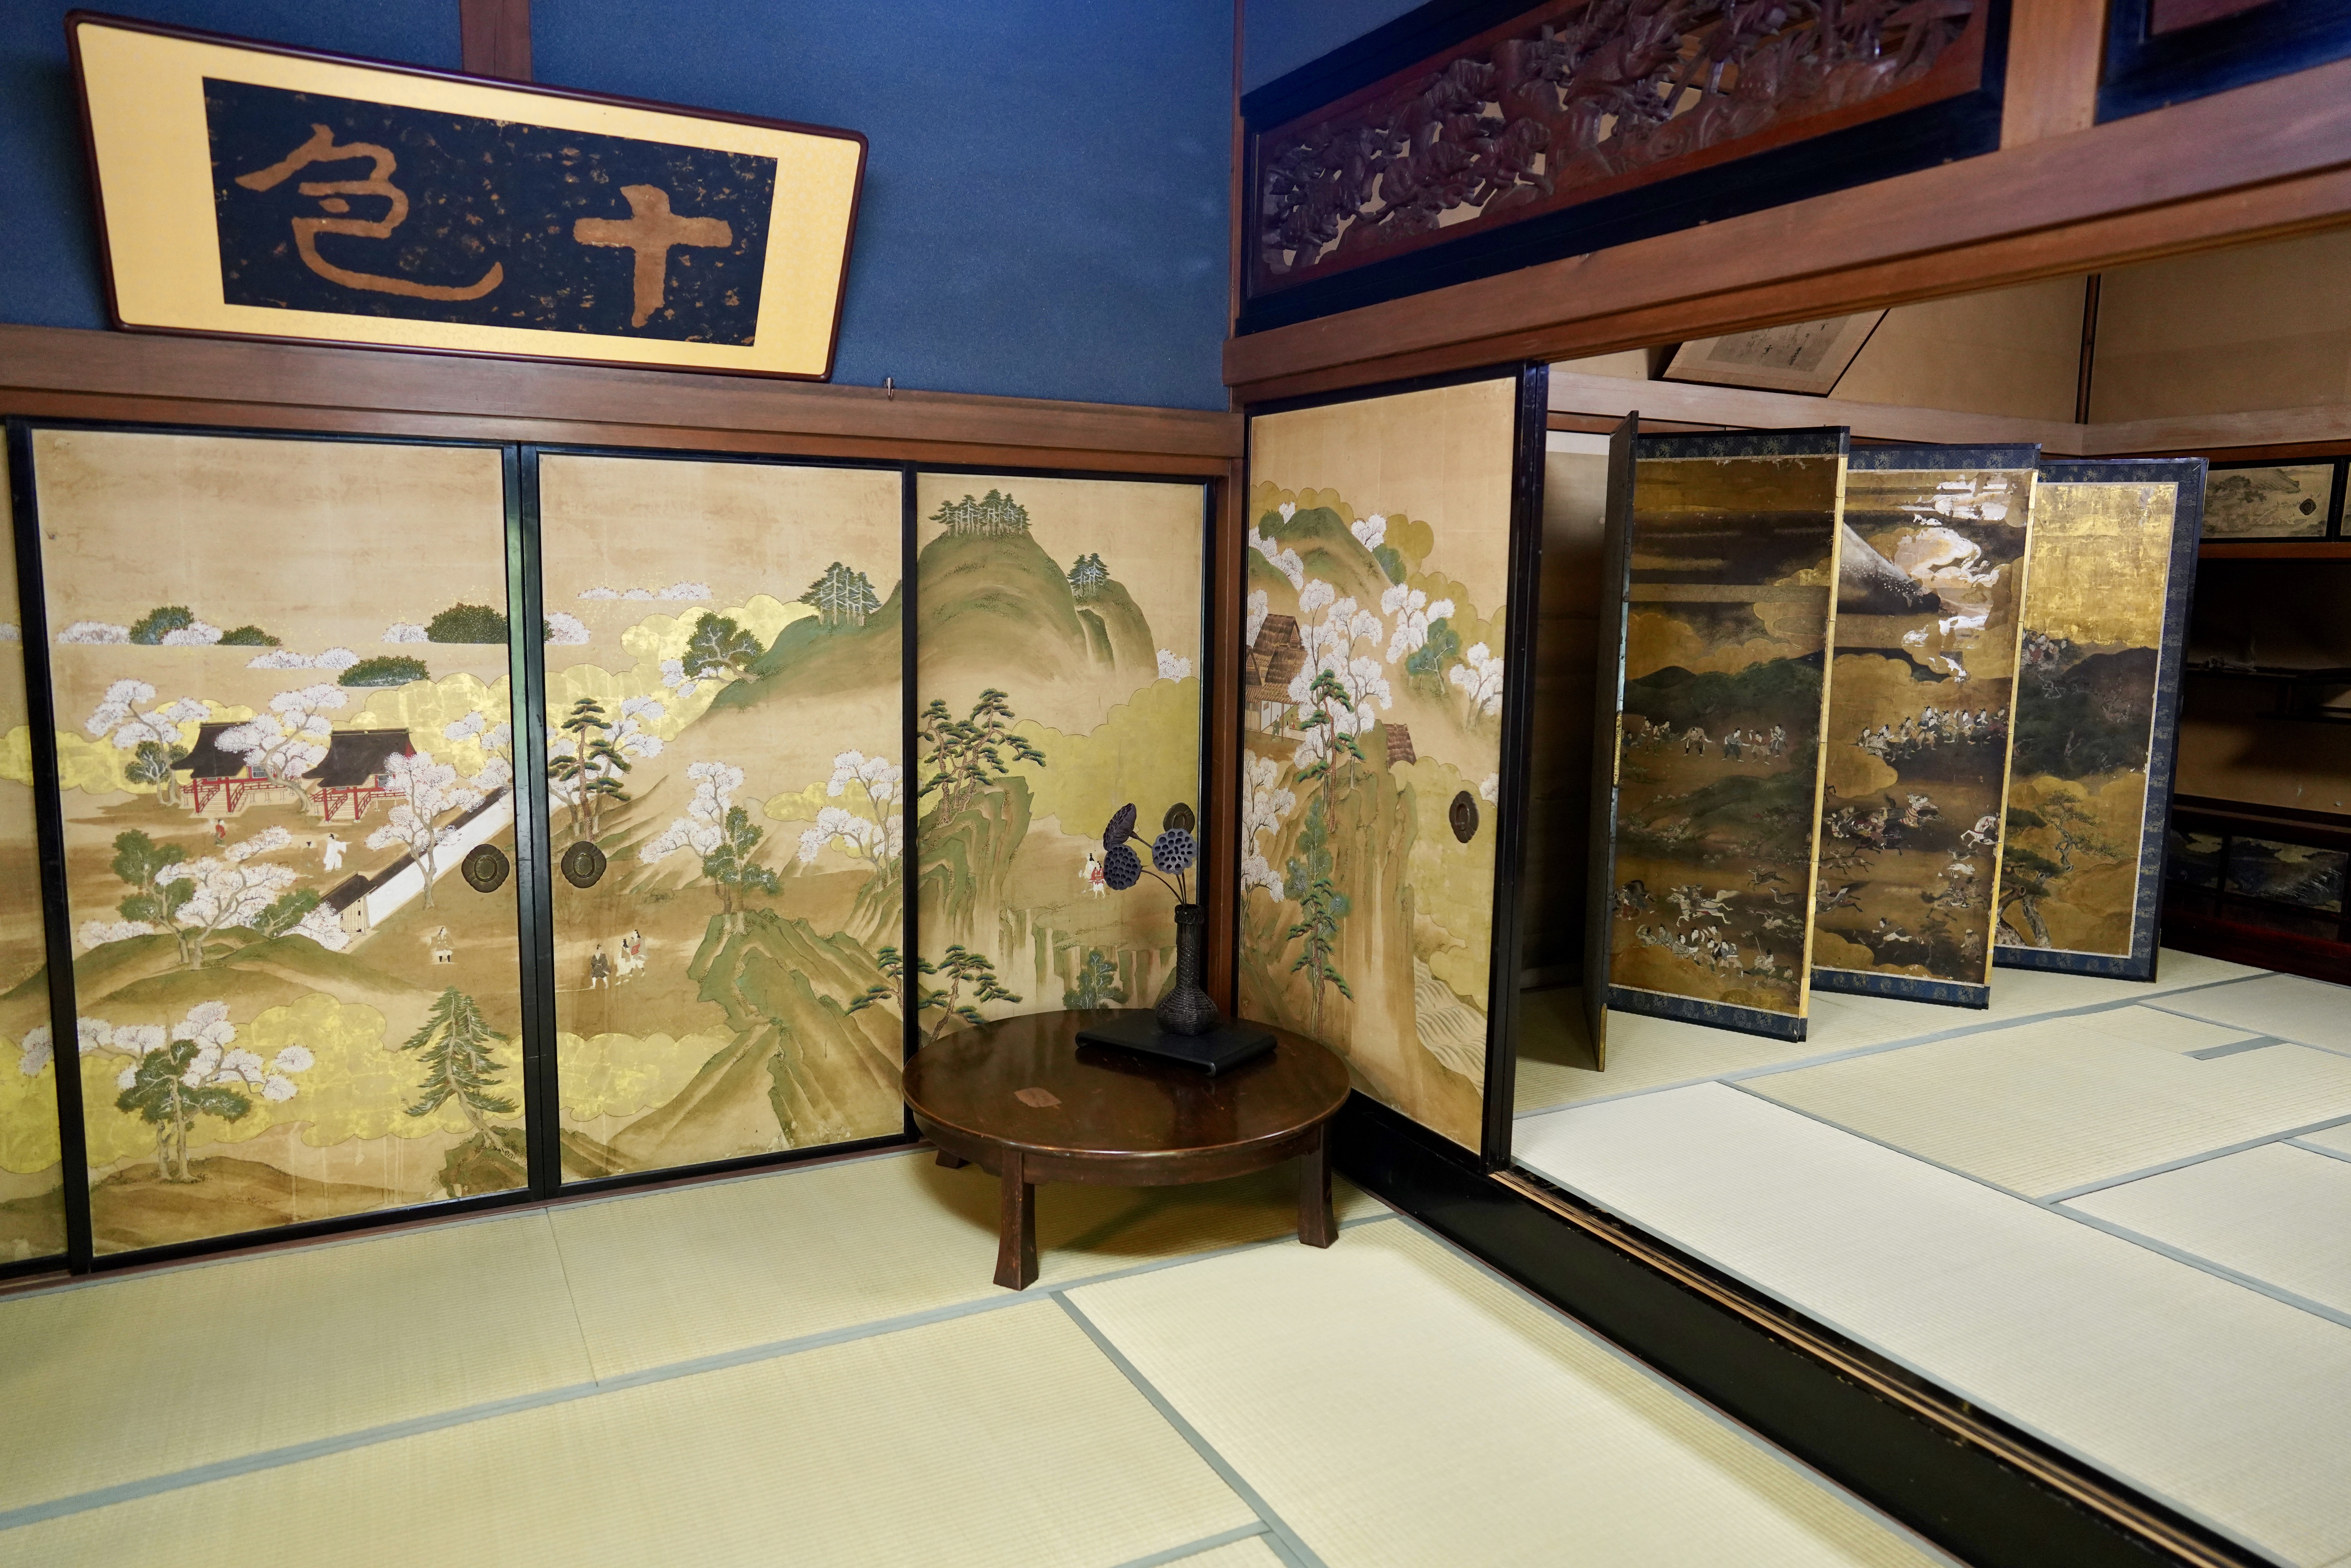 The interior of Ide Jyozo's 300-year-old home is richly decorated with stunning works of art from the Edo period.